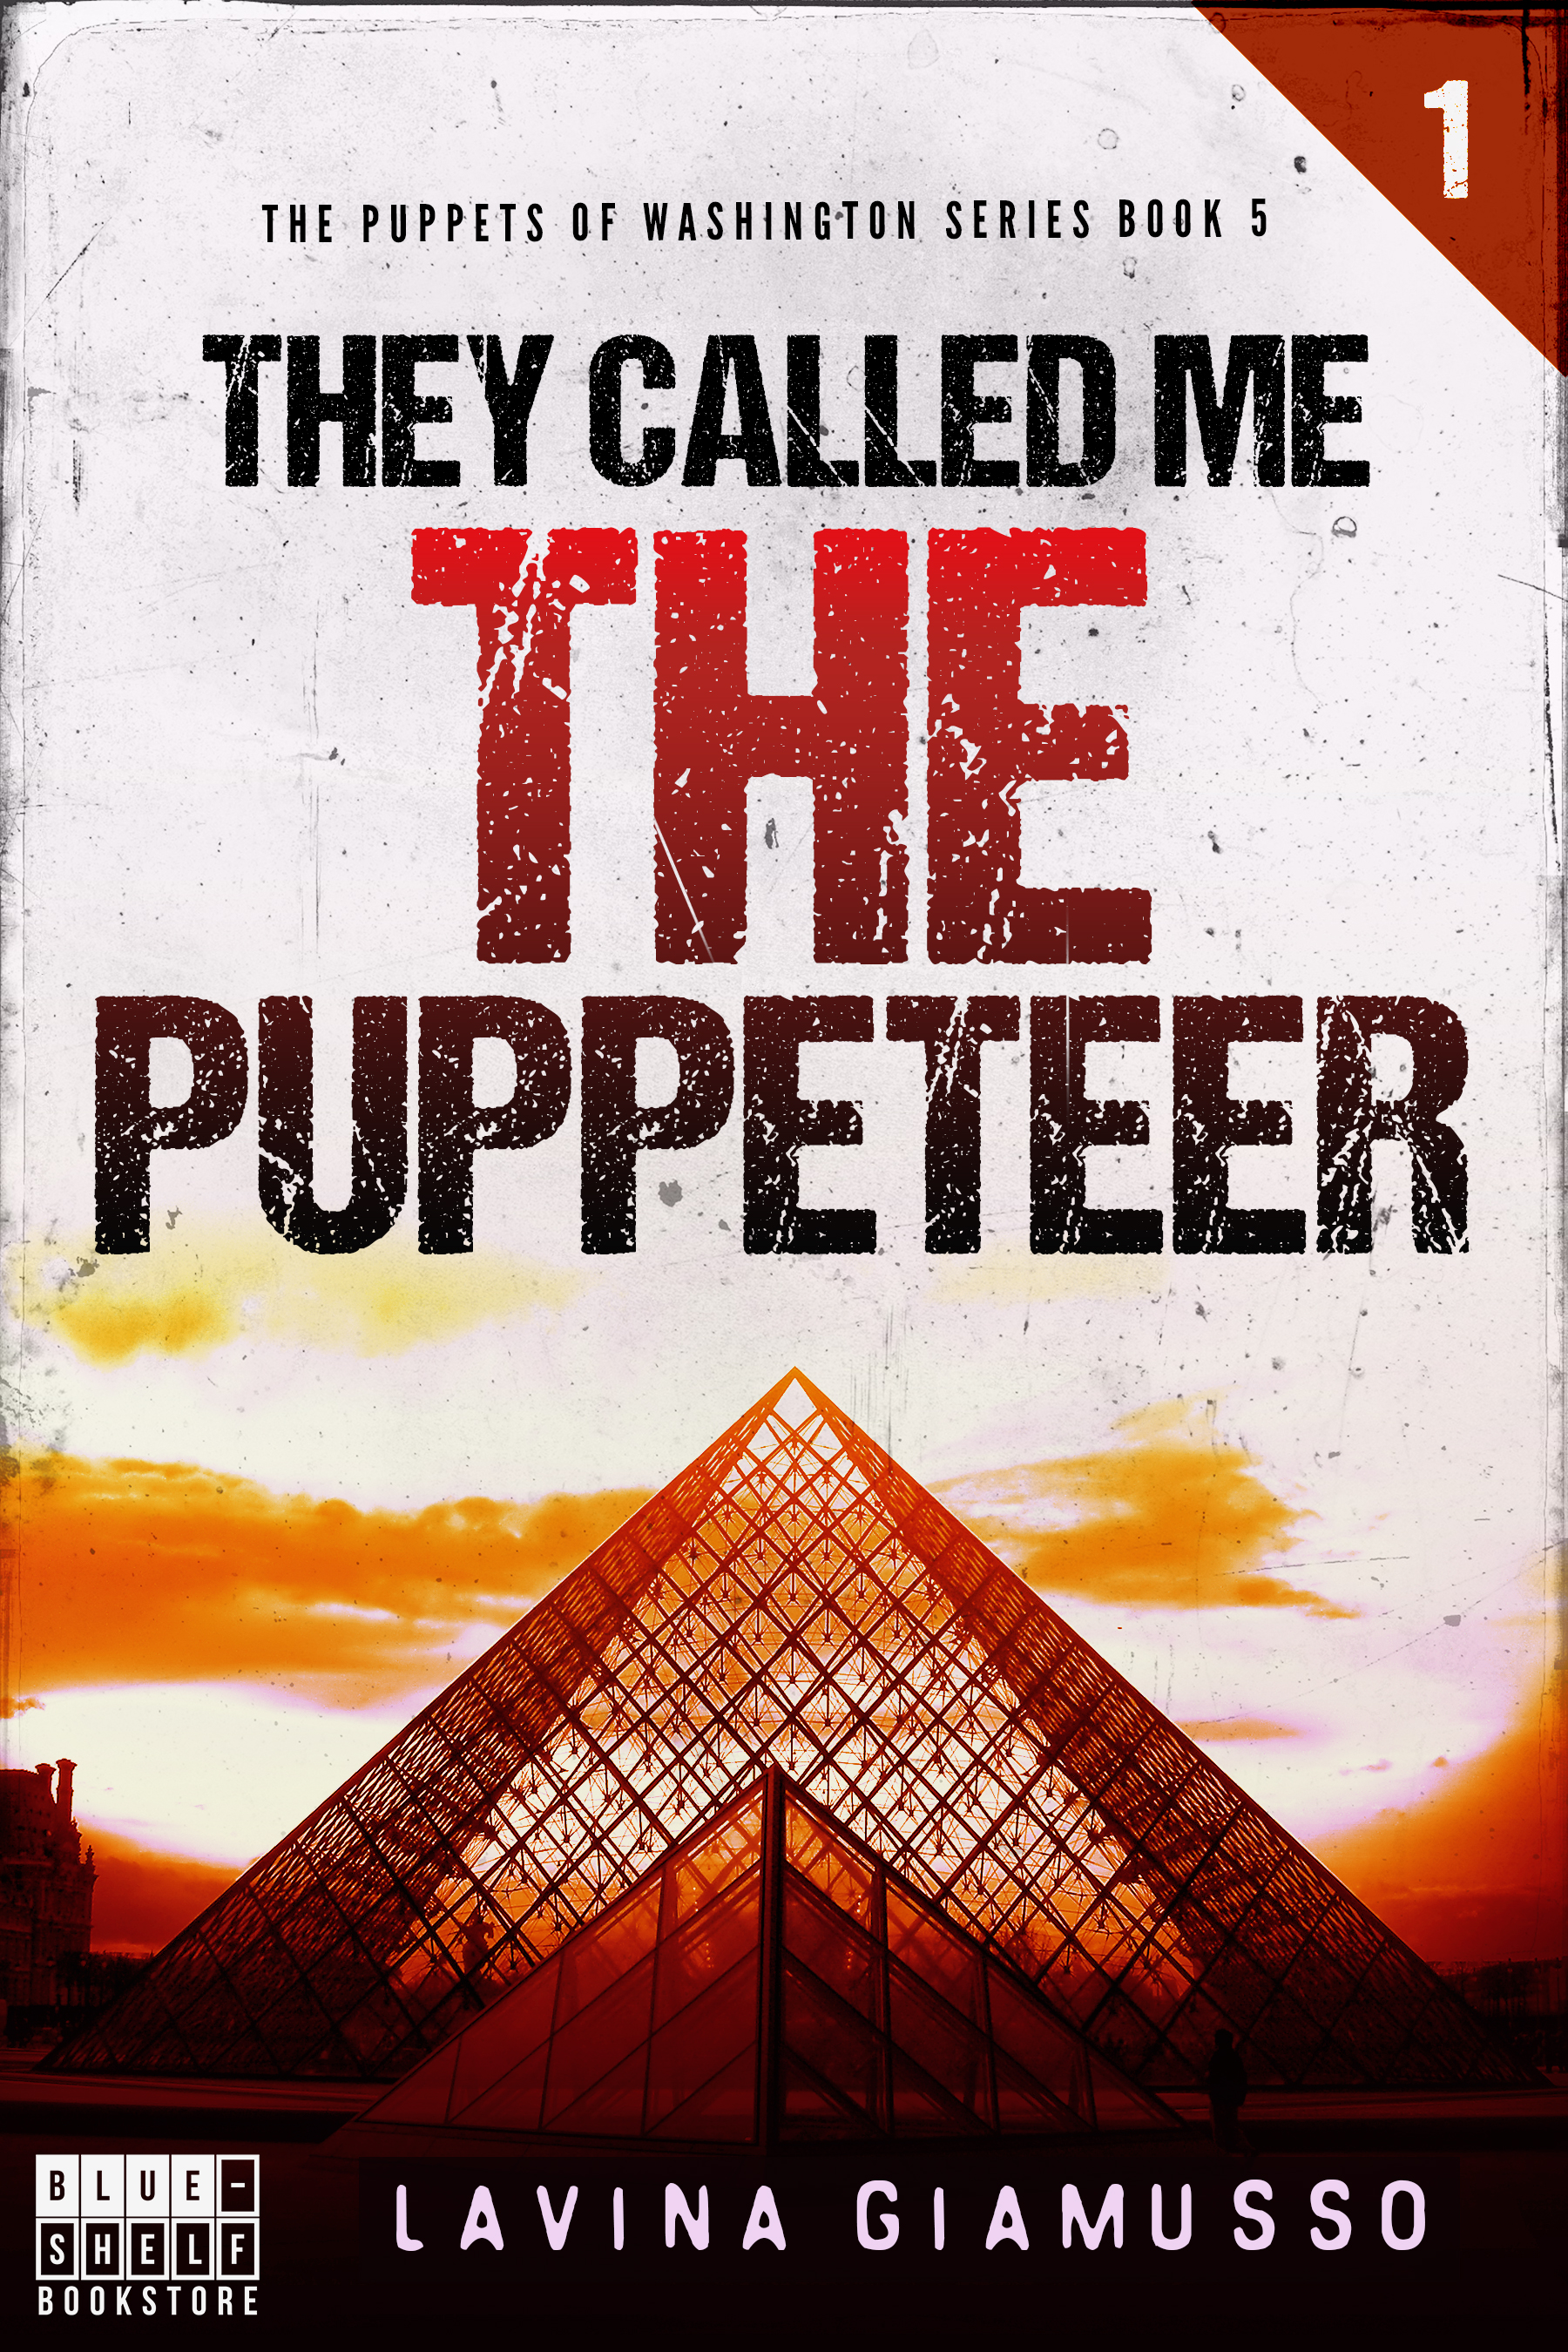 They called me THE PUPPETEER 1 (The Puppets of Washington Book 5), an Ebook  by Lavina Giamusso